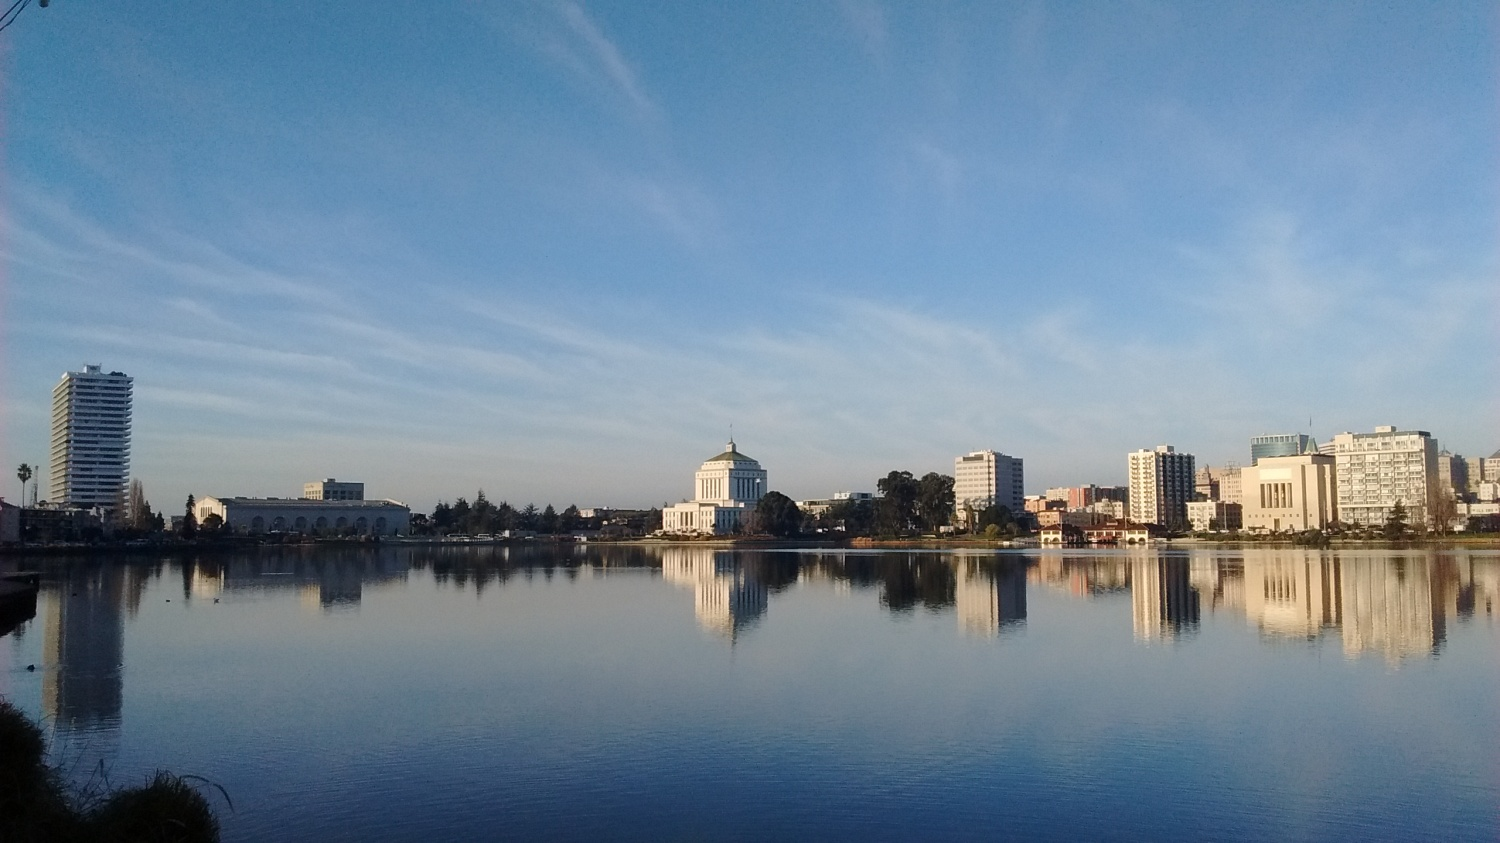 Lake Merritt on a January morning